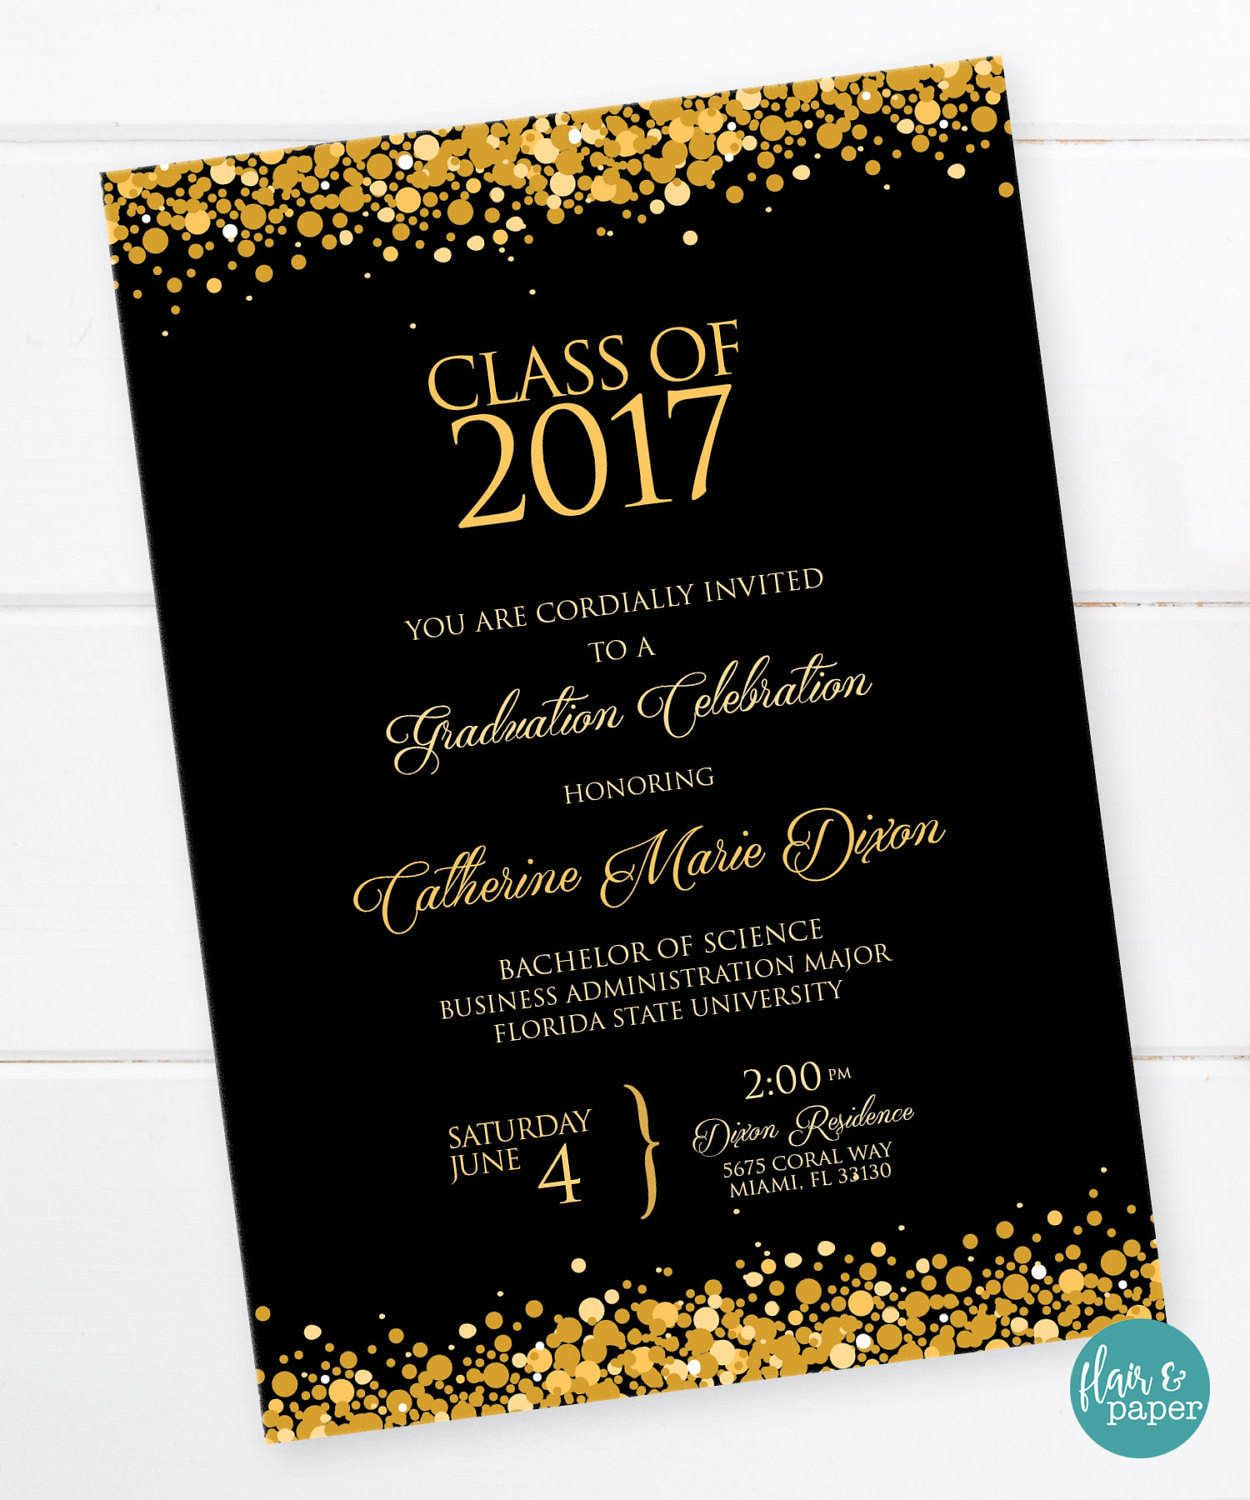 001 Shocking College Graduation Invitation Template Idea  Party Free For WordFull